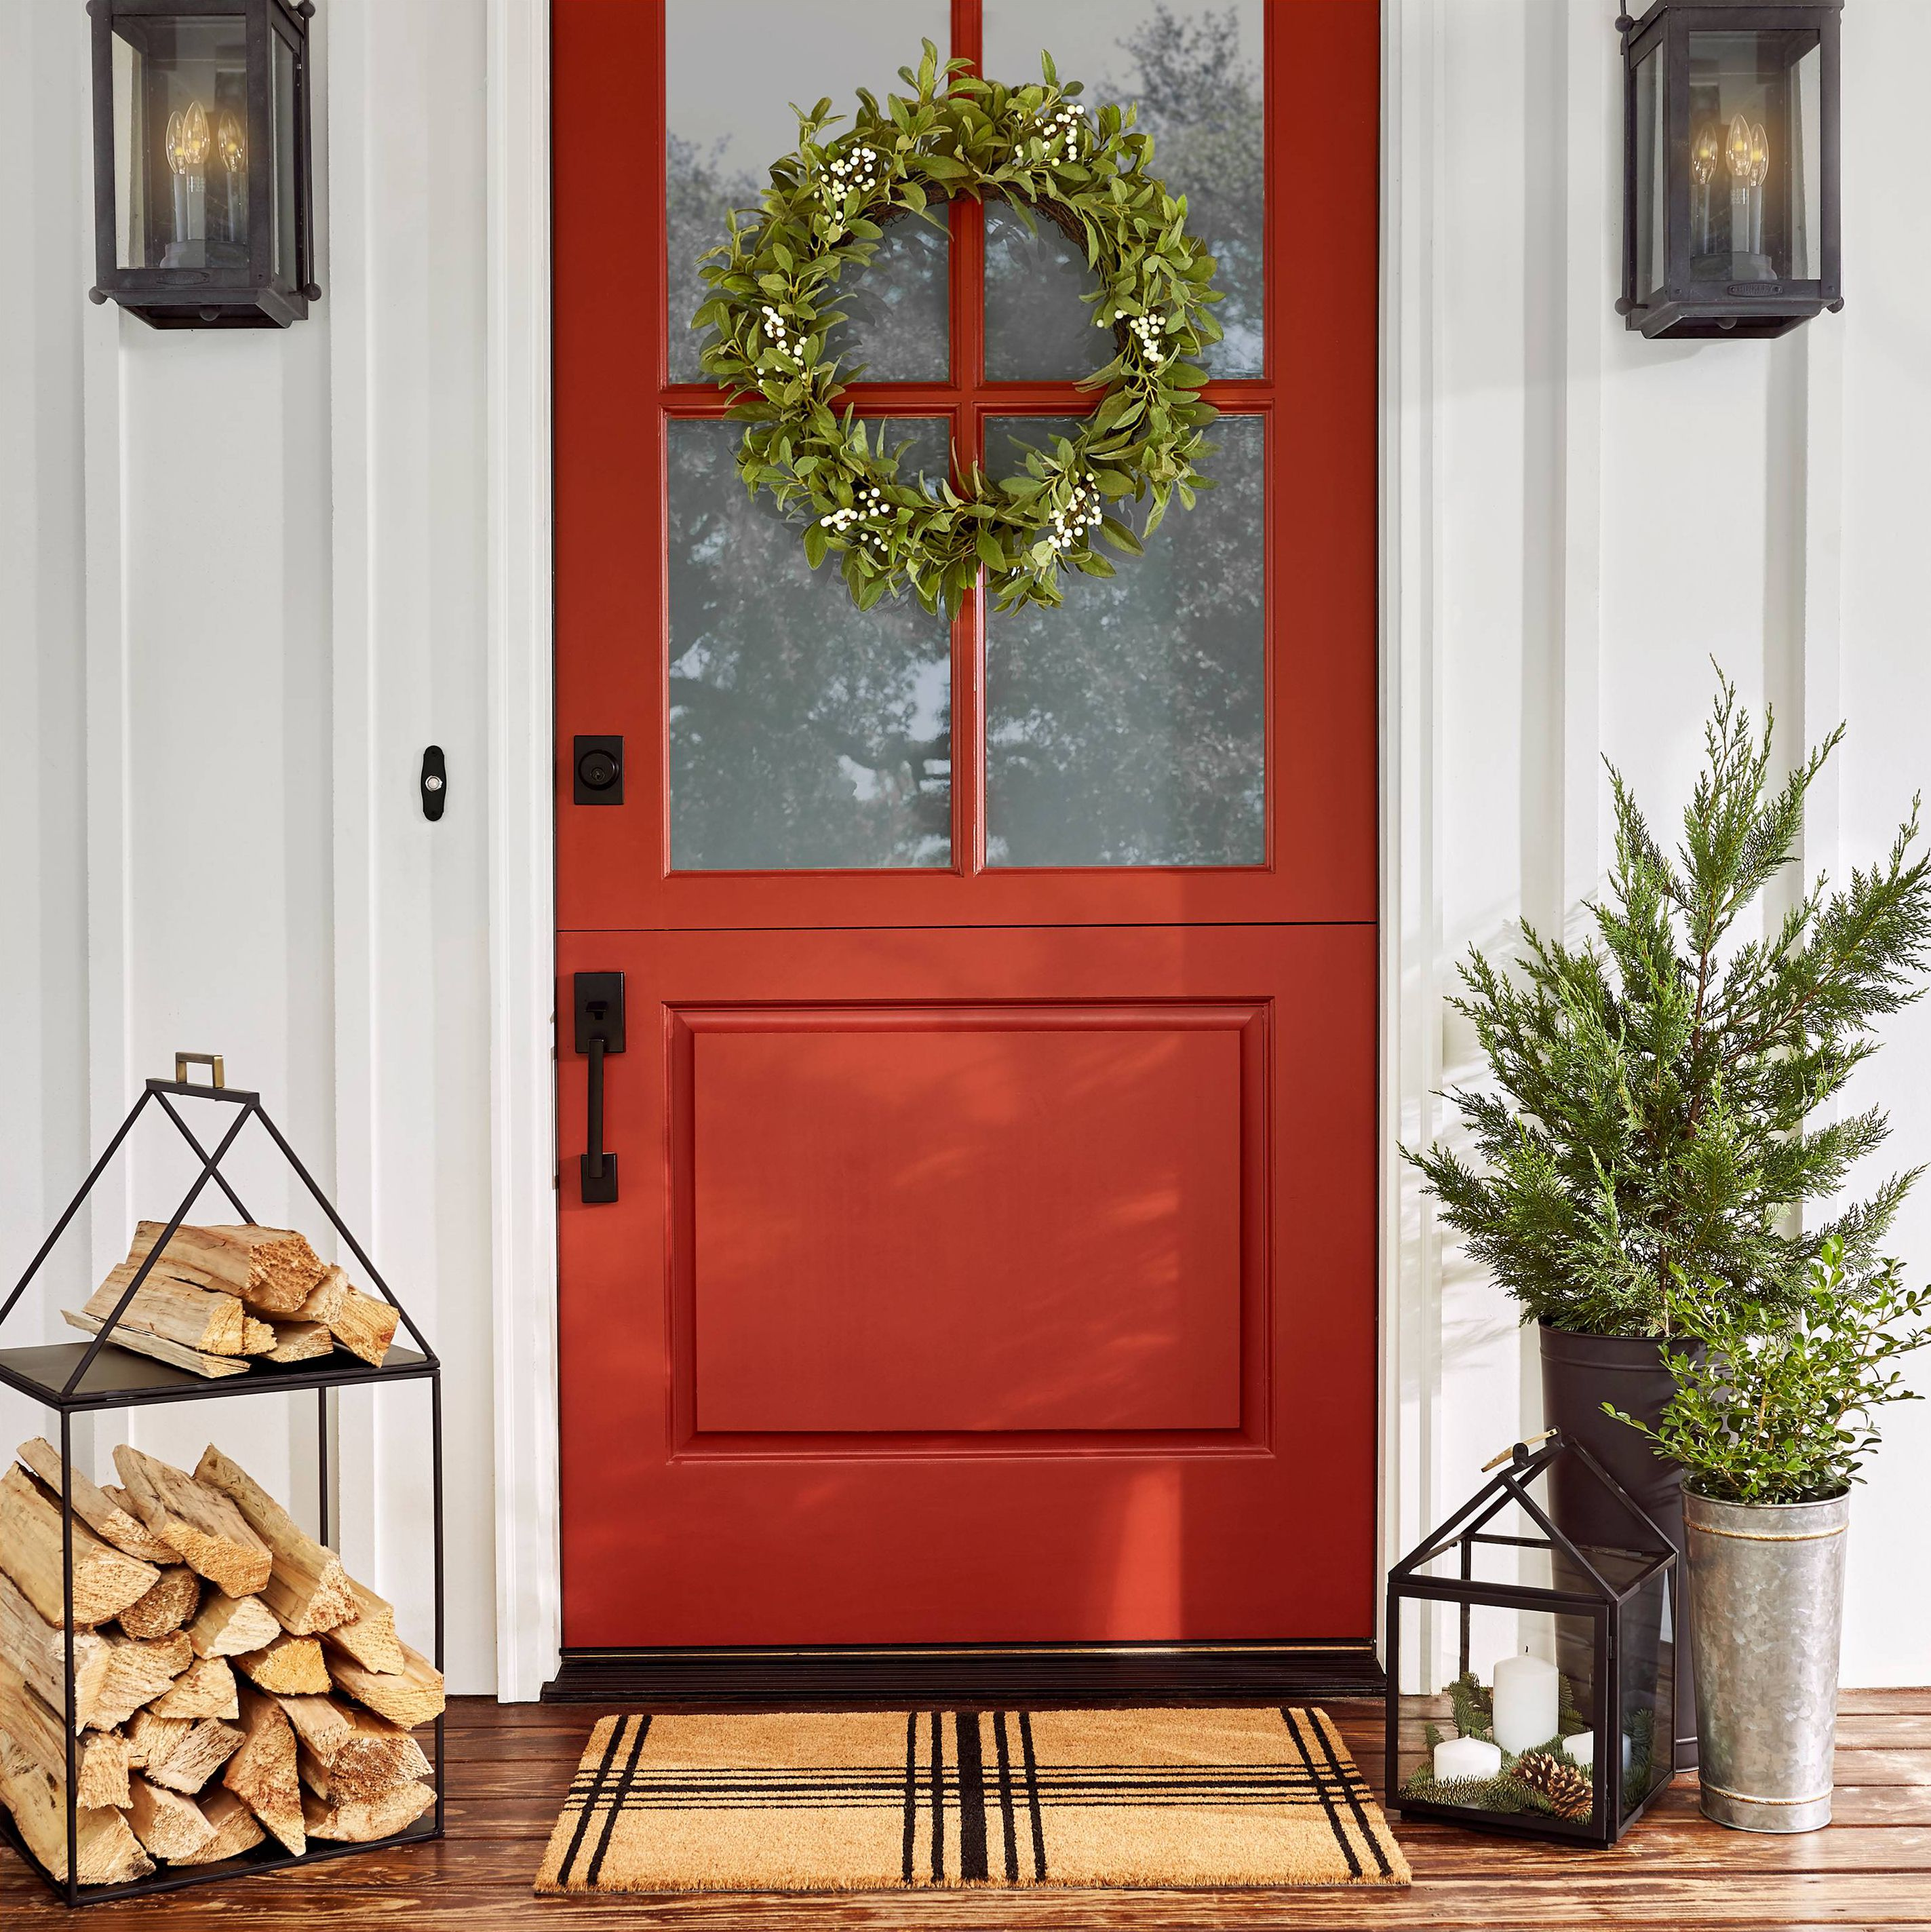 35 Christmas Door Decorating Ideas - Best Decorations for Your Front Door & 35 Christmas Door Decorating Ideas - Best Decorations for Your Front ...